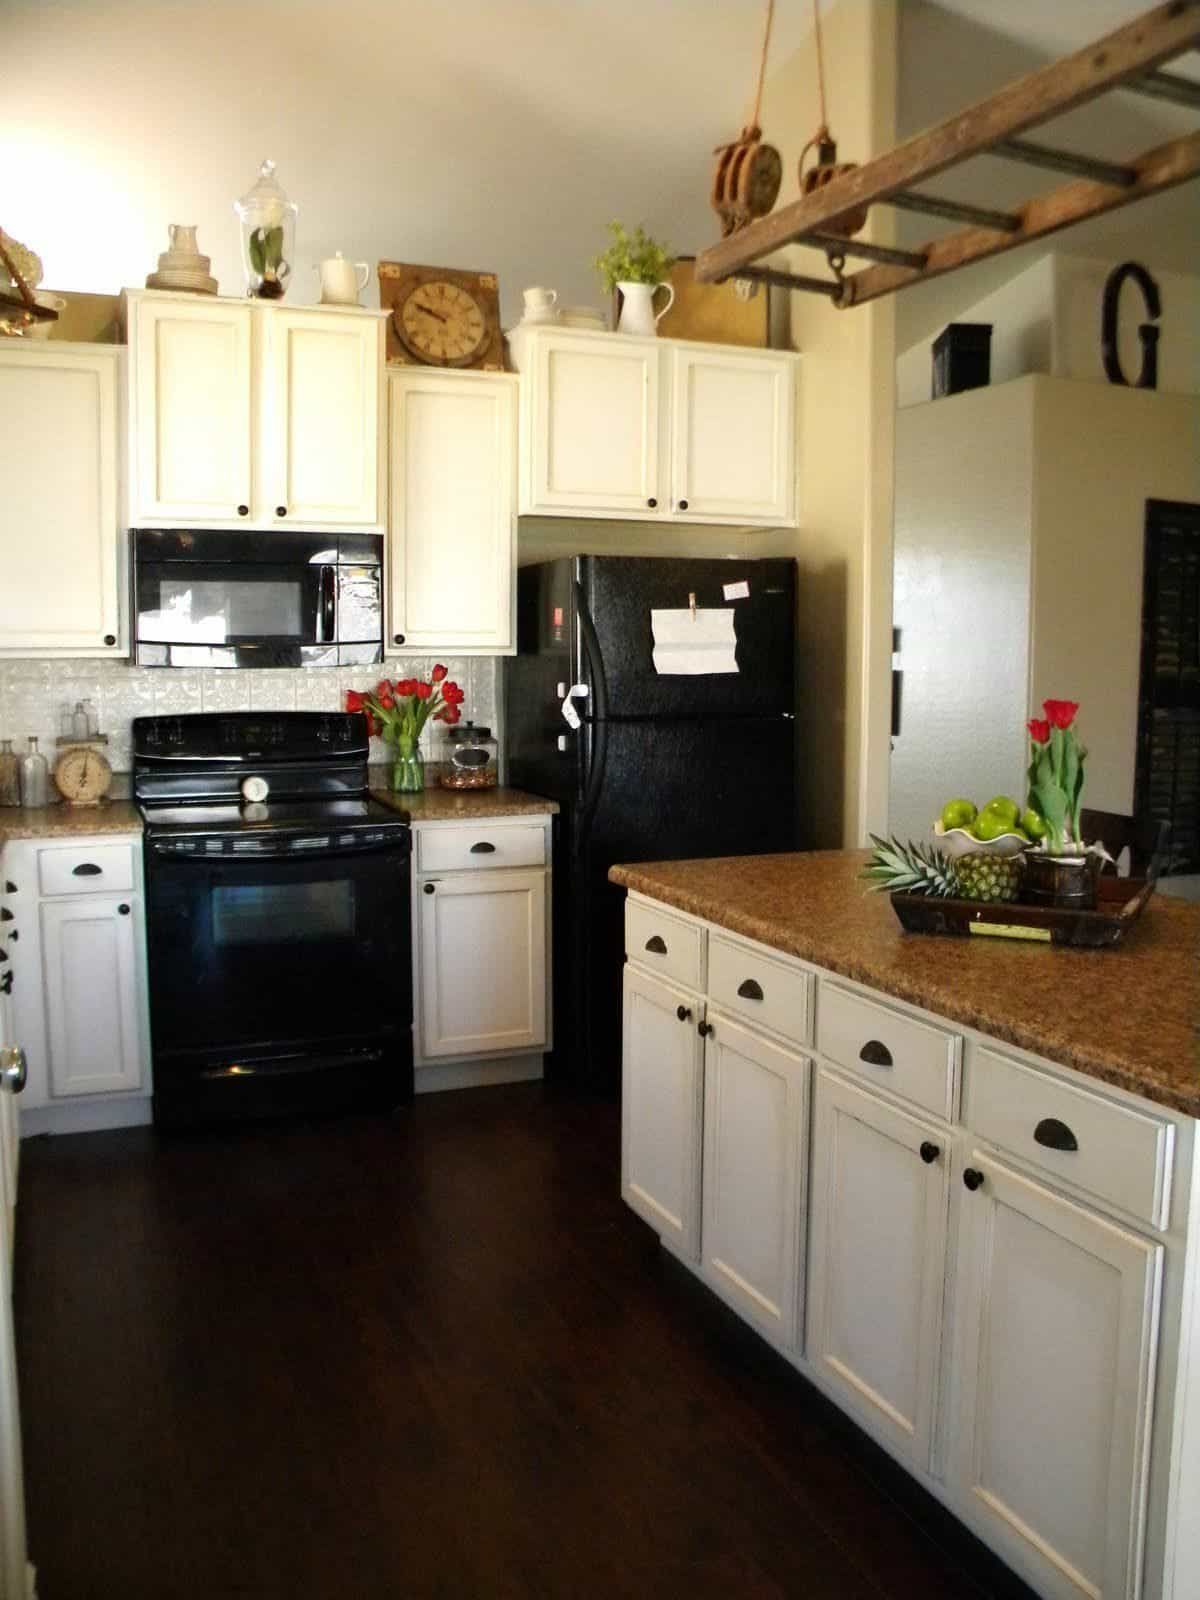 Fashionable And Sophisticated Kitchen Black Appliances Black Appliances Kitchen Kitchen Cabinets With Black Appliances White Cabinets Black Appliances